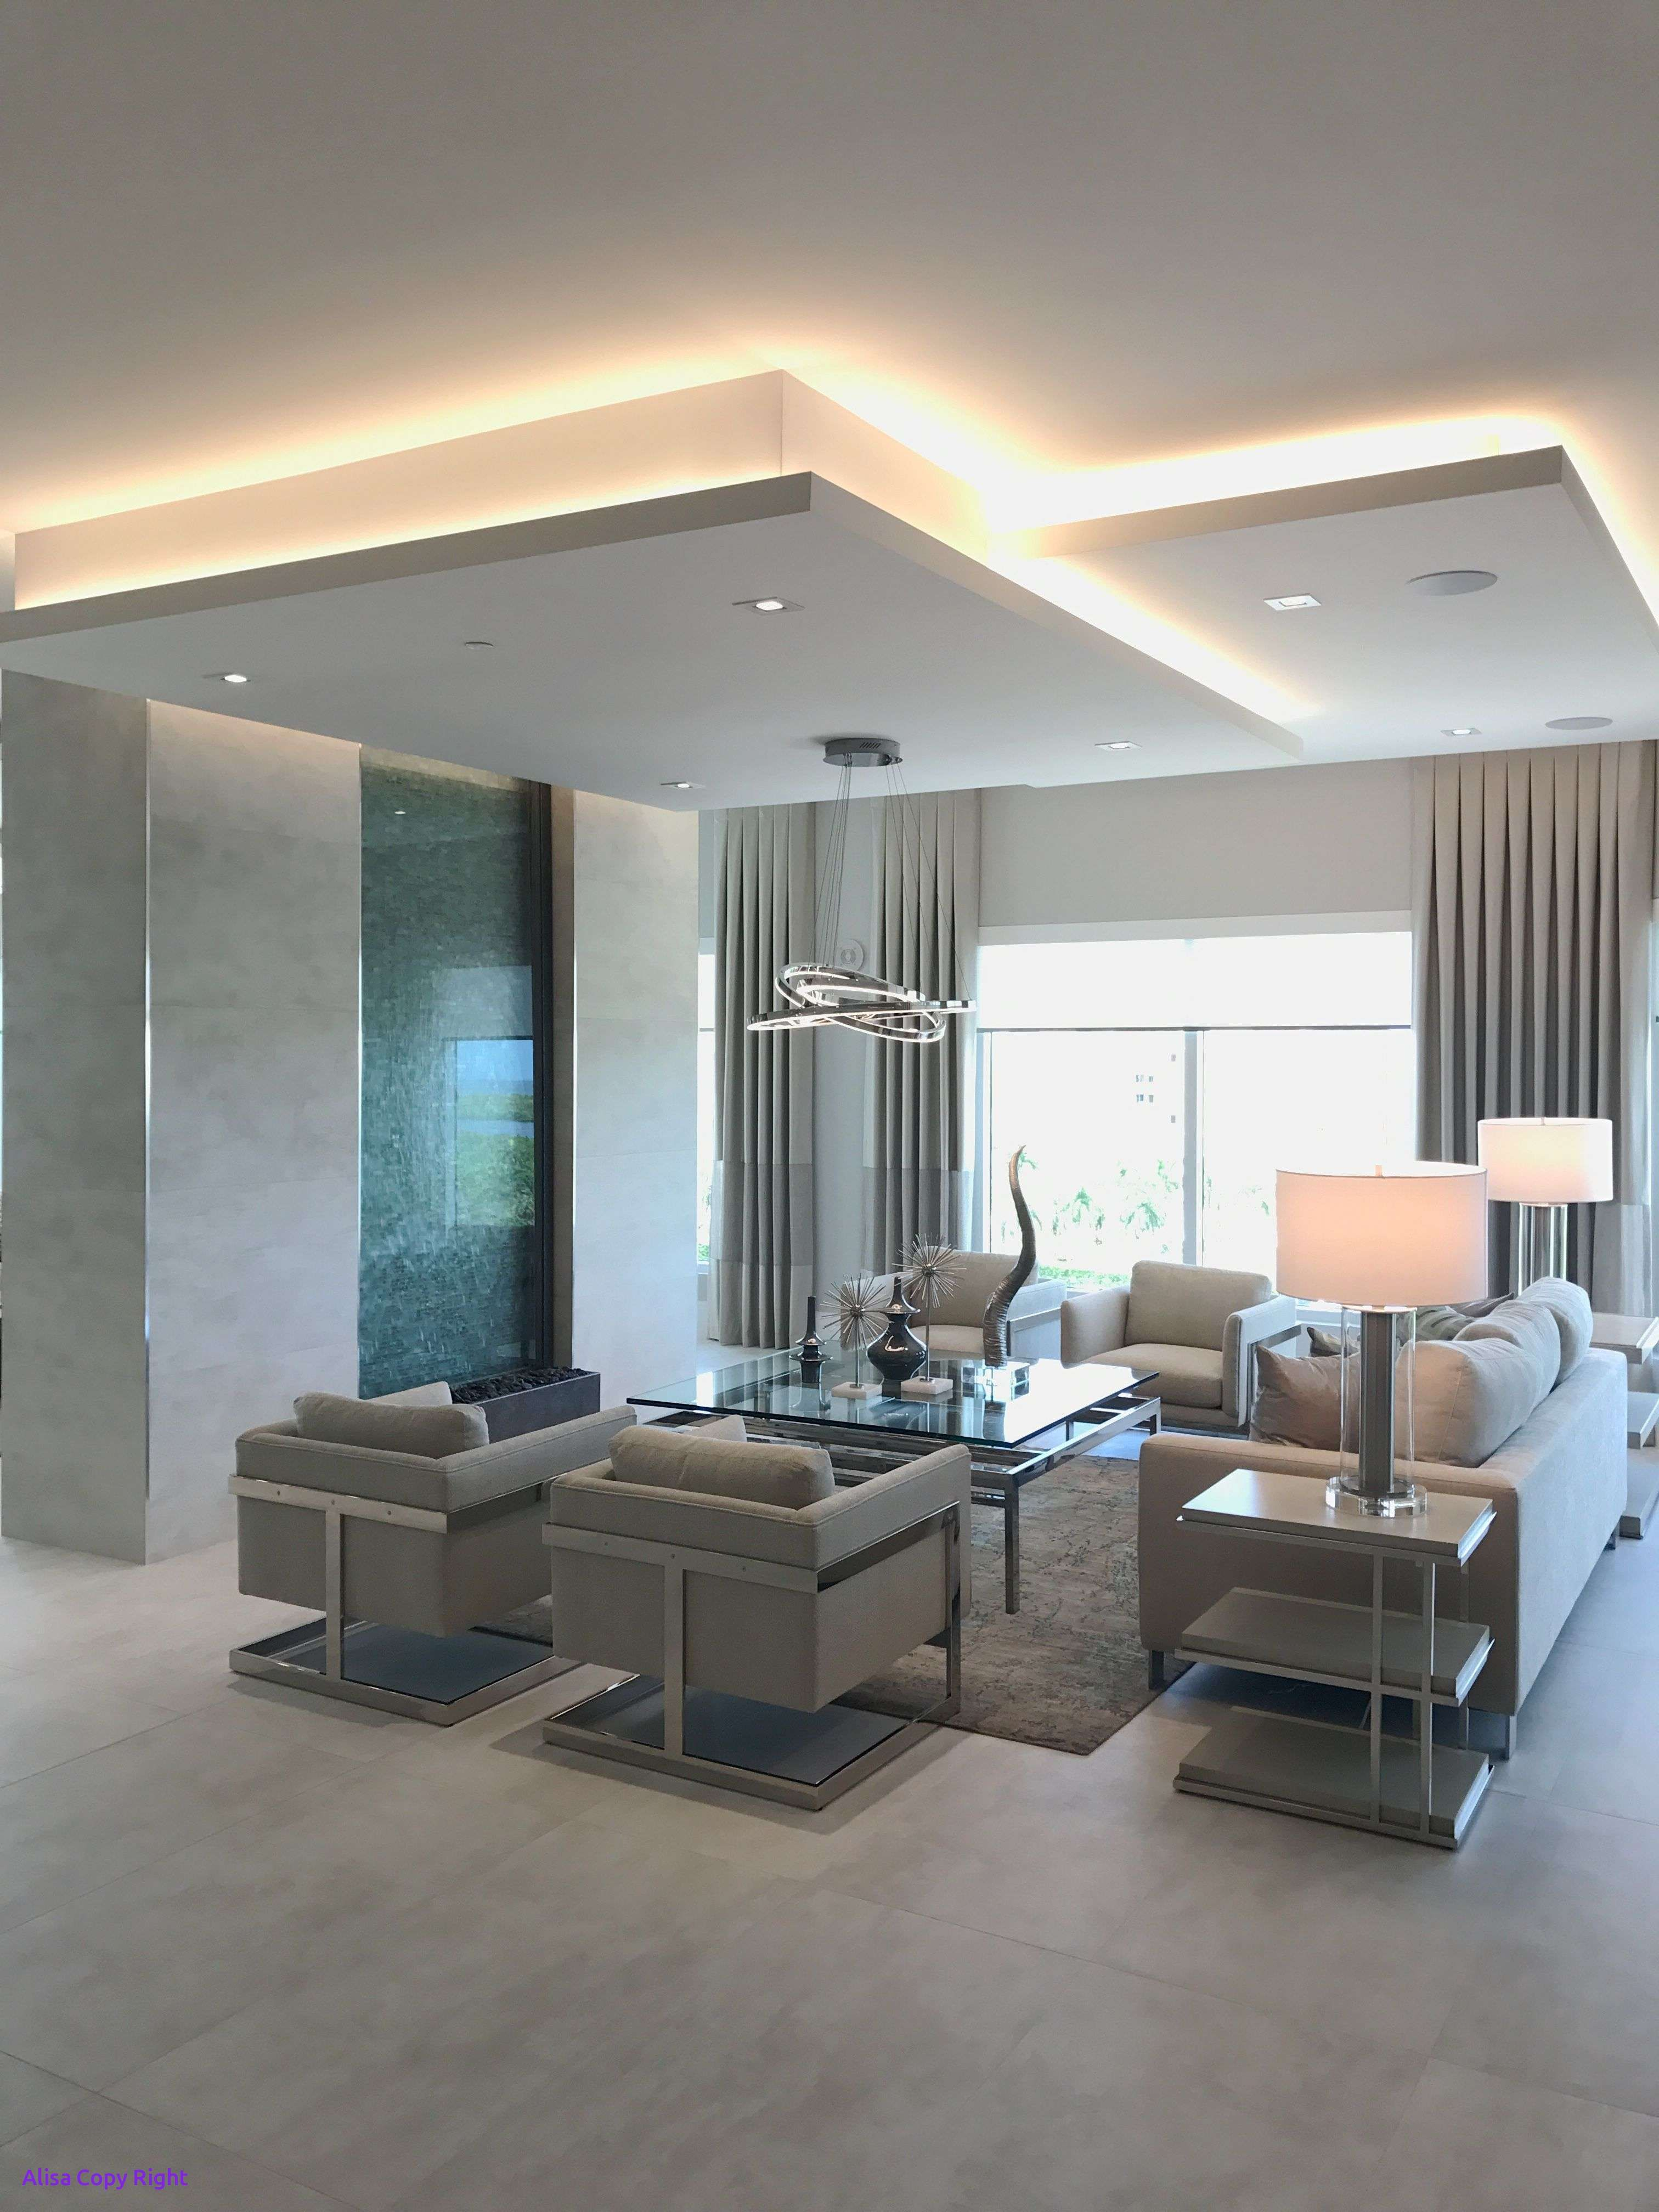 Fresh Living Room Ceiling Ideas, #homedecoration #homedecorations